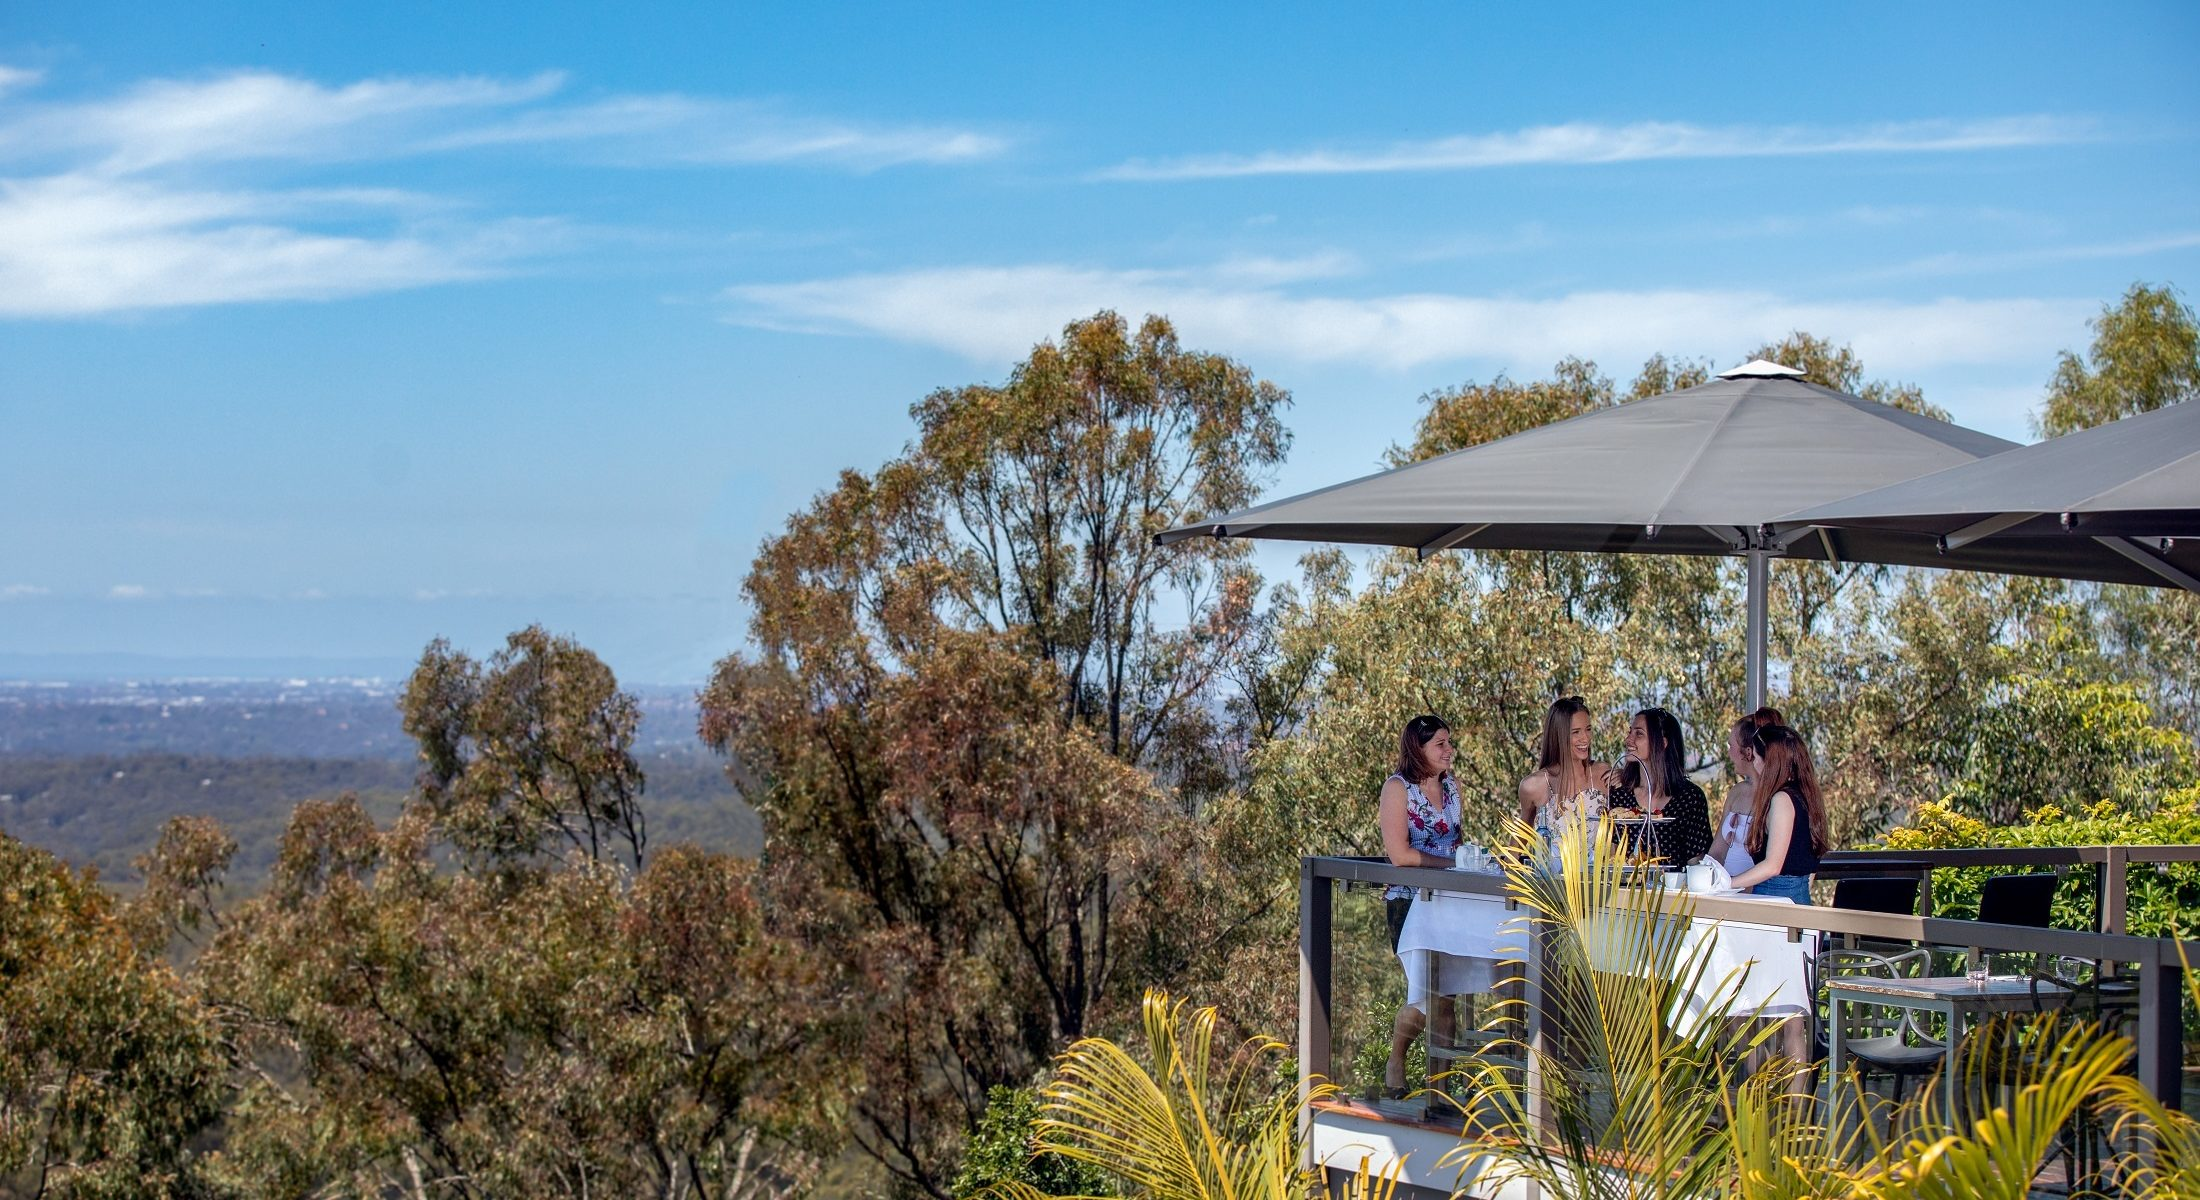 Mercure Clear Mountain Lodge Brisbane Queensland High Tea Drone Shoot Visit Moreton Bay Region